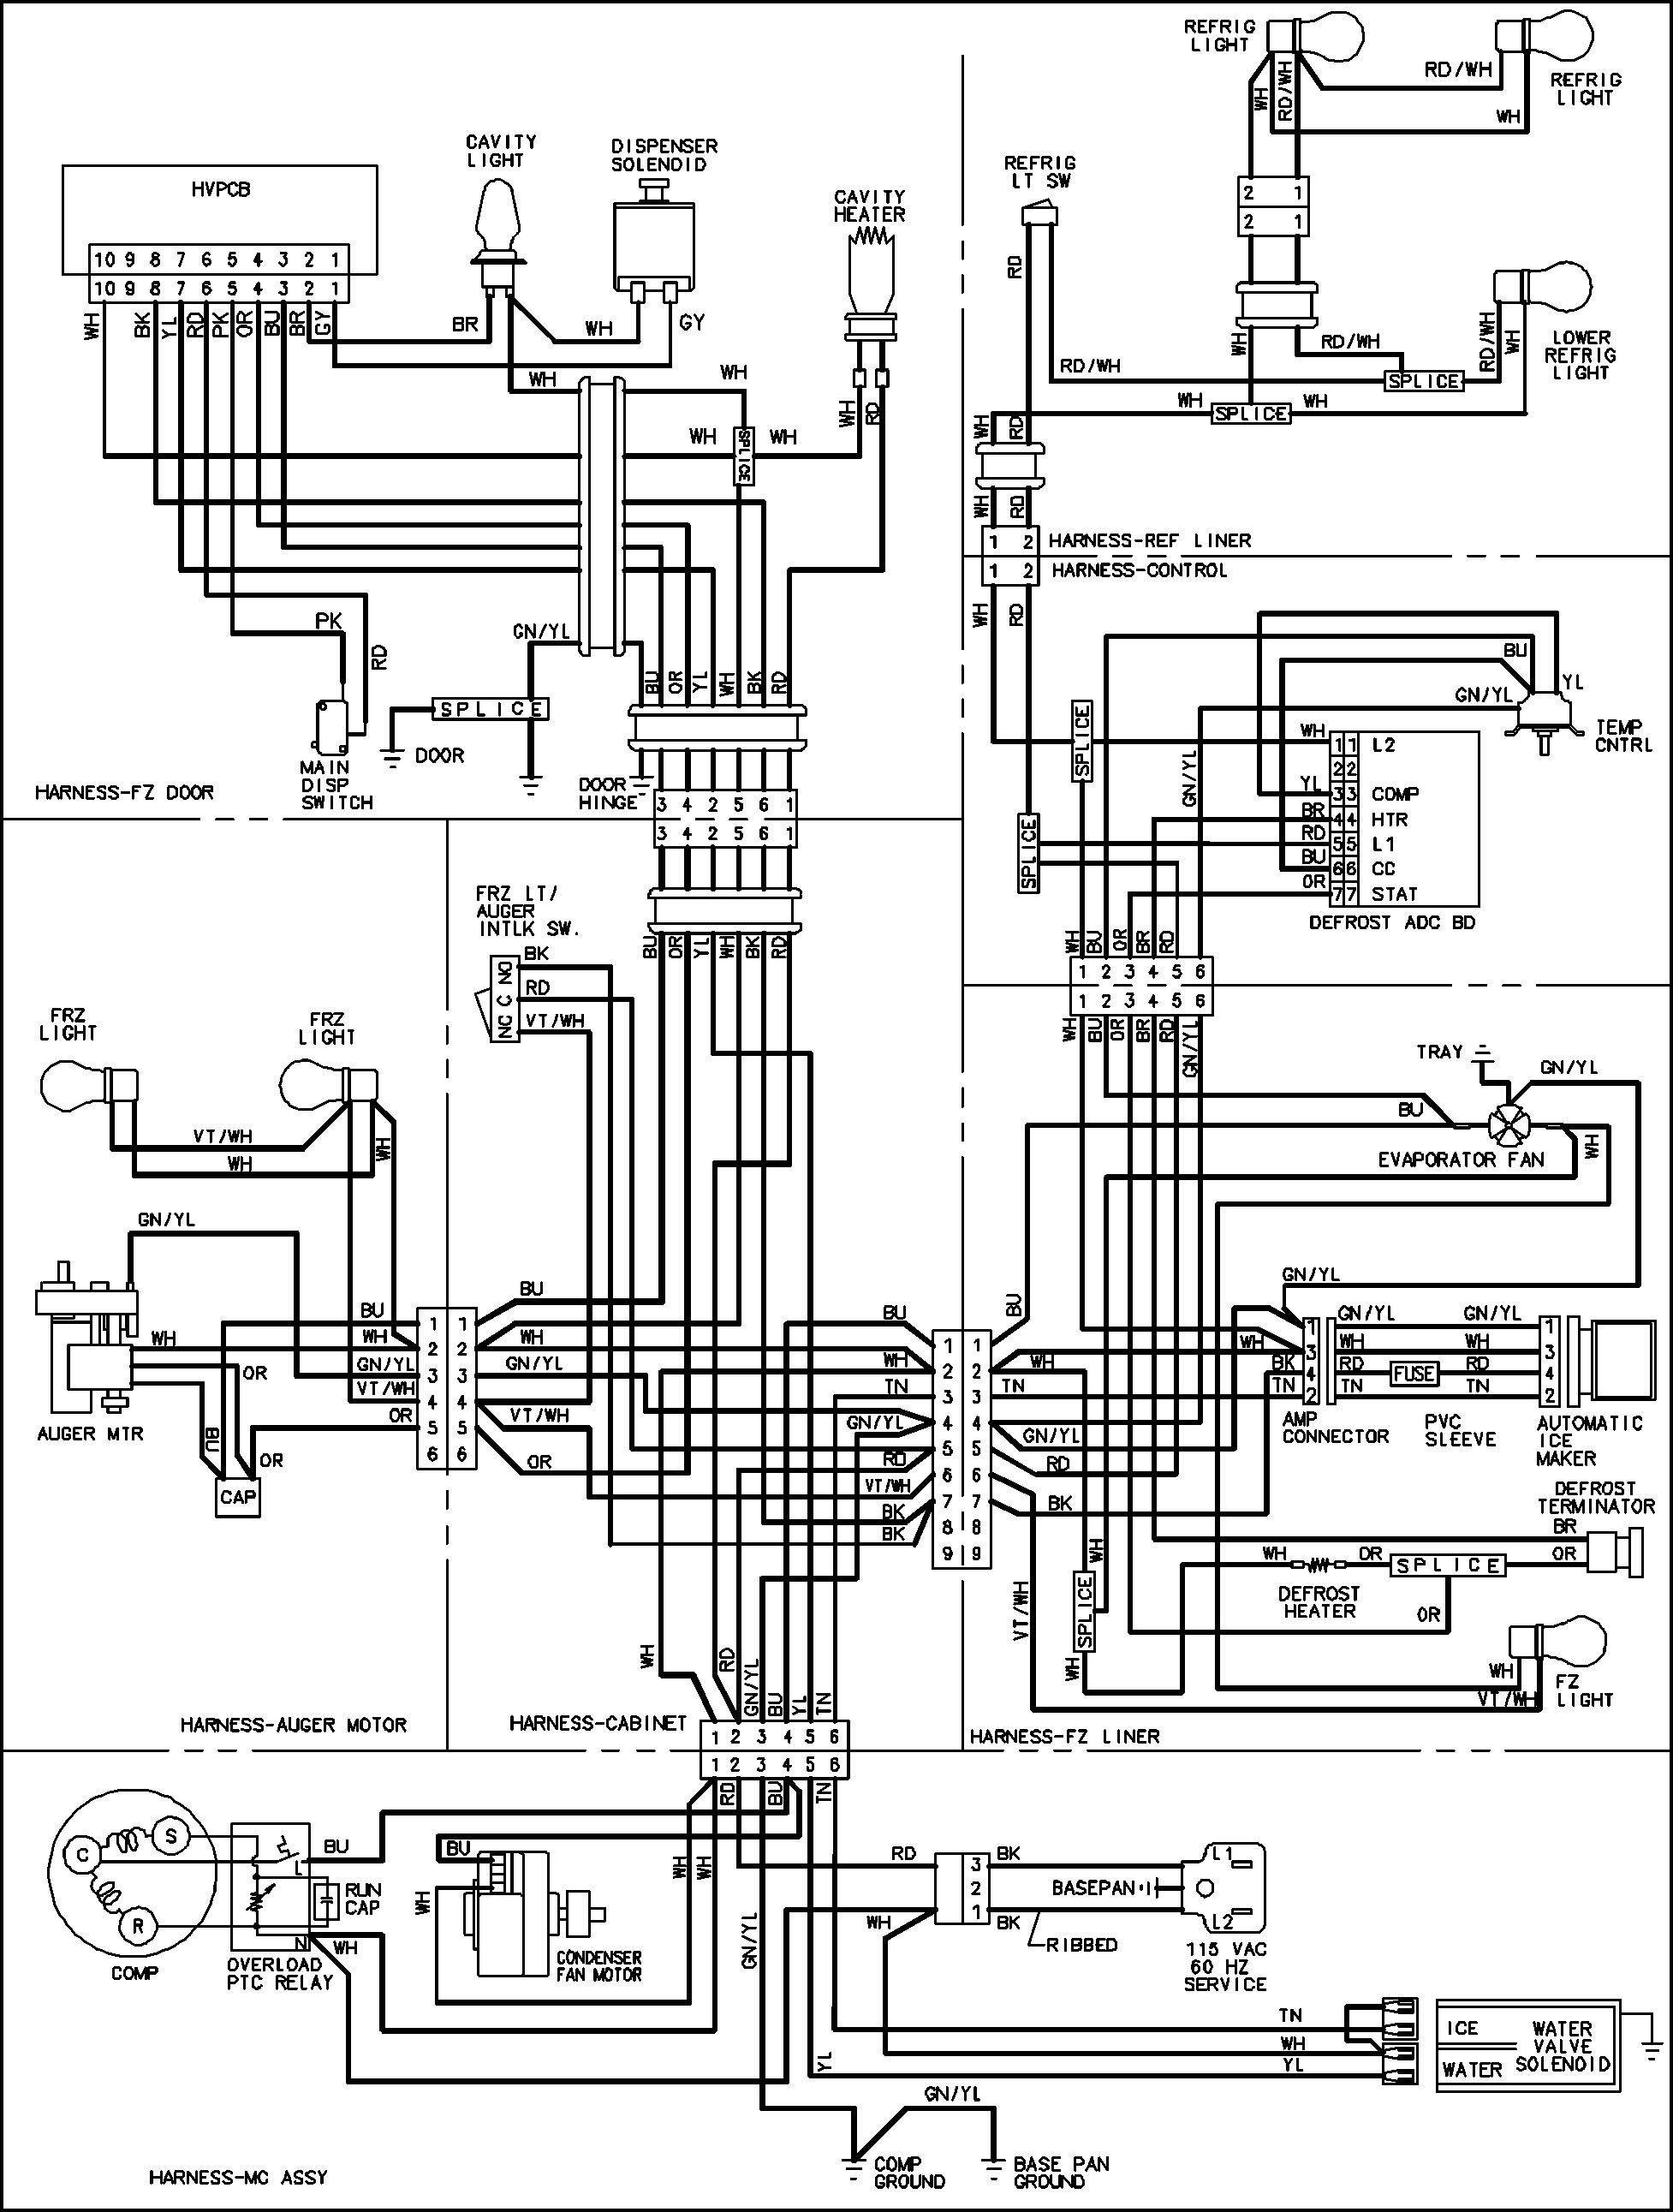 Bendix Ec 30 Wiring Diagram ABS Modulator Pump Diagrams